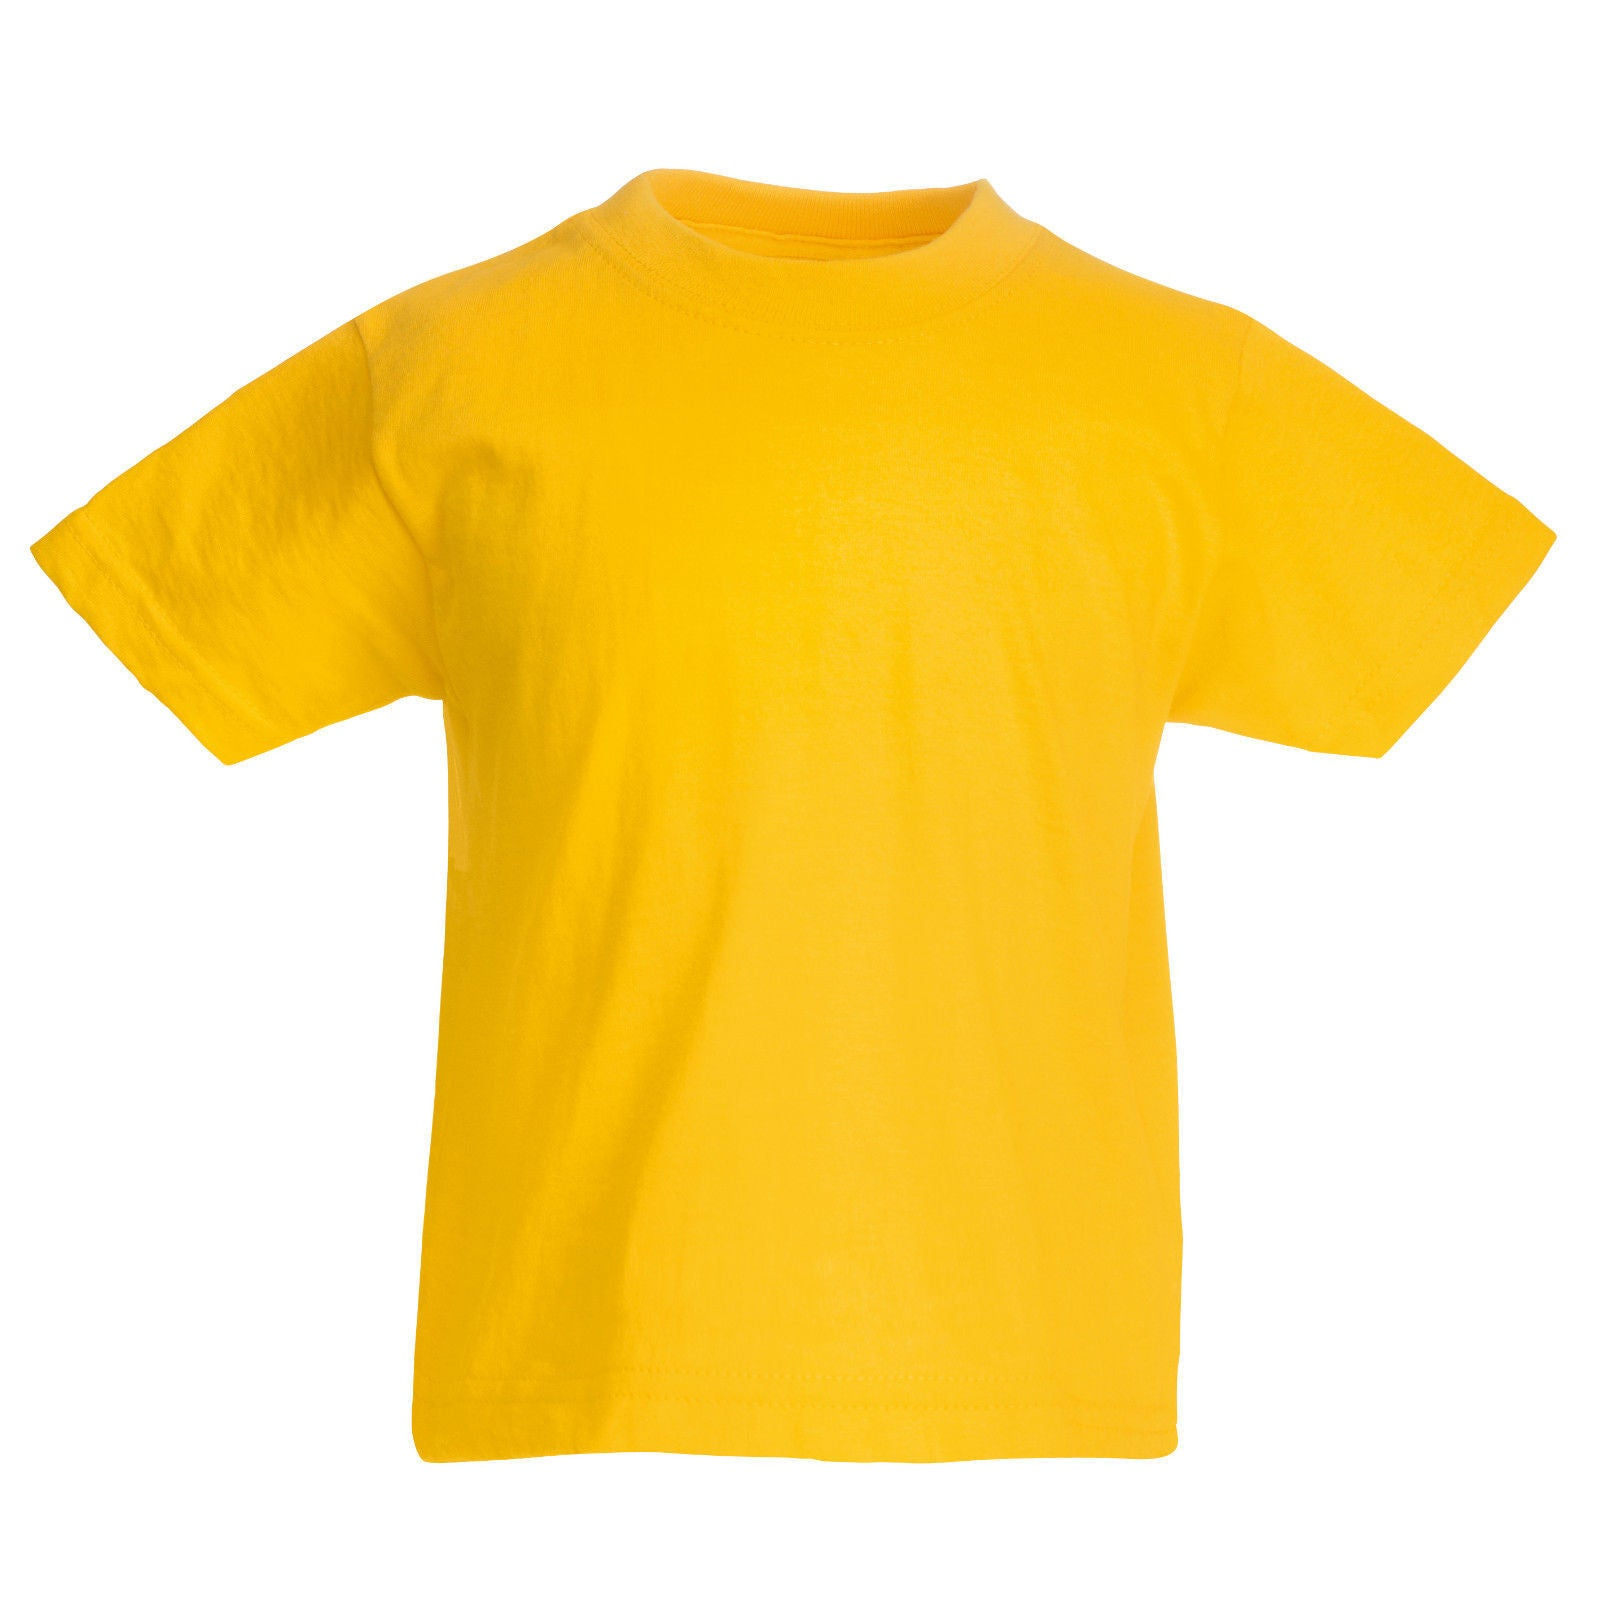 Boys' T-Shirts & Shirts for Every Activity Shirts for boys from DICK'S Sporting Goods offer maximum versatility and are perfect for a range of activities and casual settings. Tailored for a great fit and made from high-quality materials that are soft to the touch, boys' shirts are always a comfortable option.